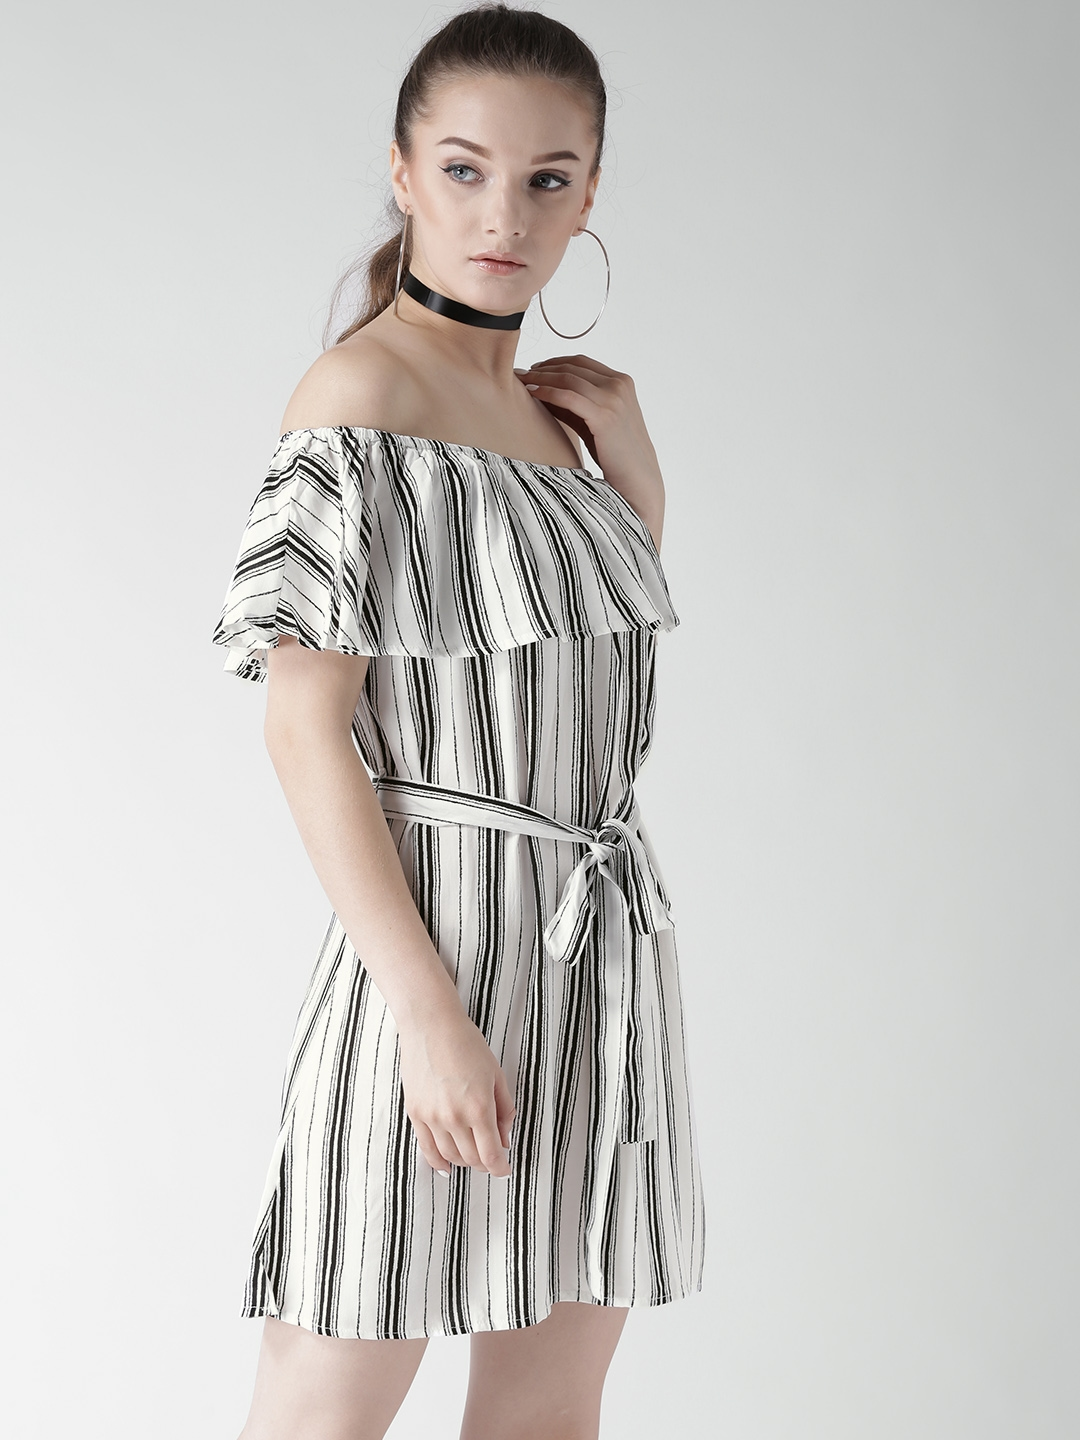 d15b44b9f126 Buy FOREVER 21 Women White Striped Off Shoulder A Line Dress ...